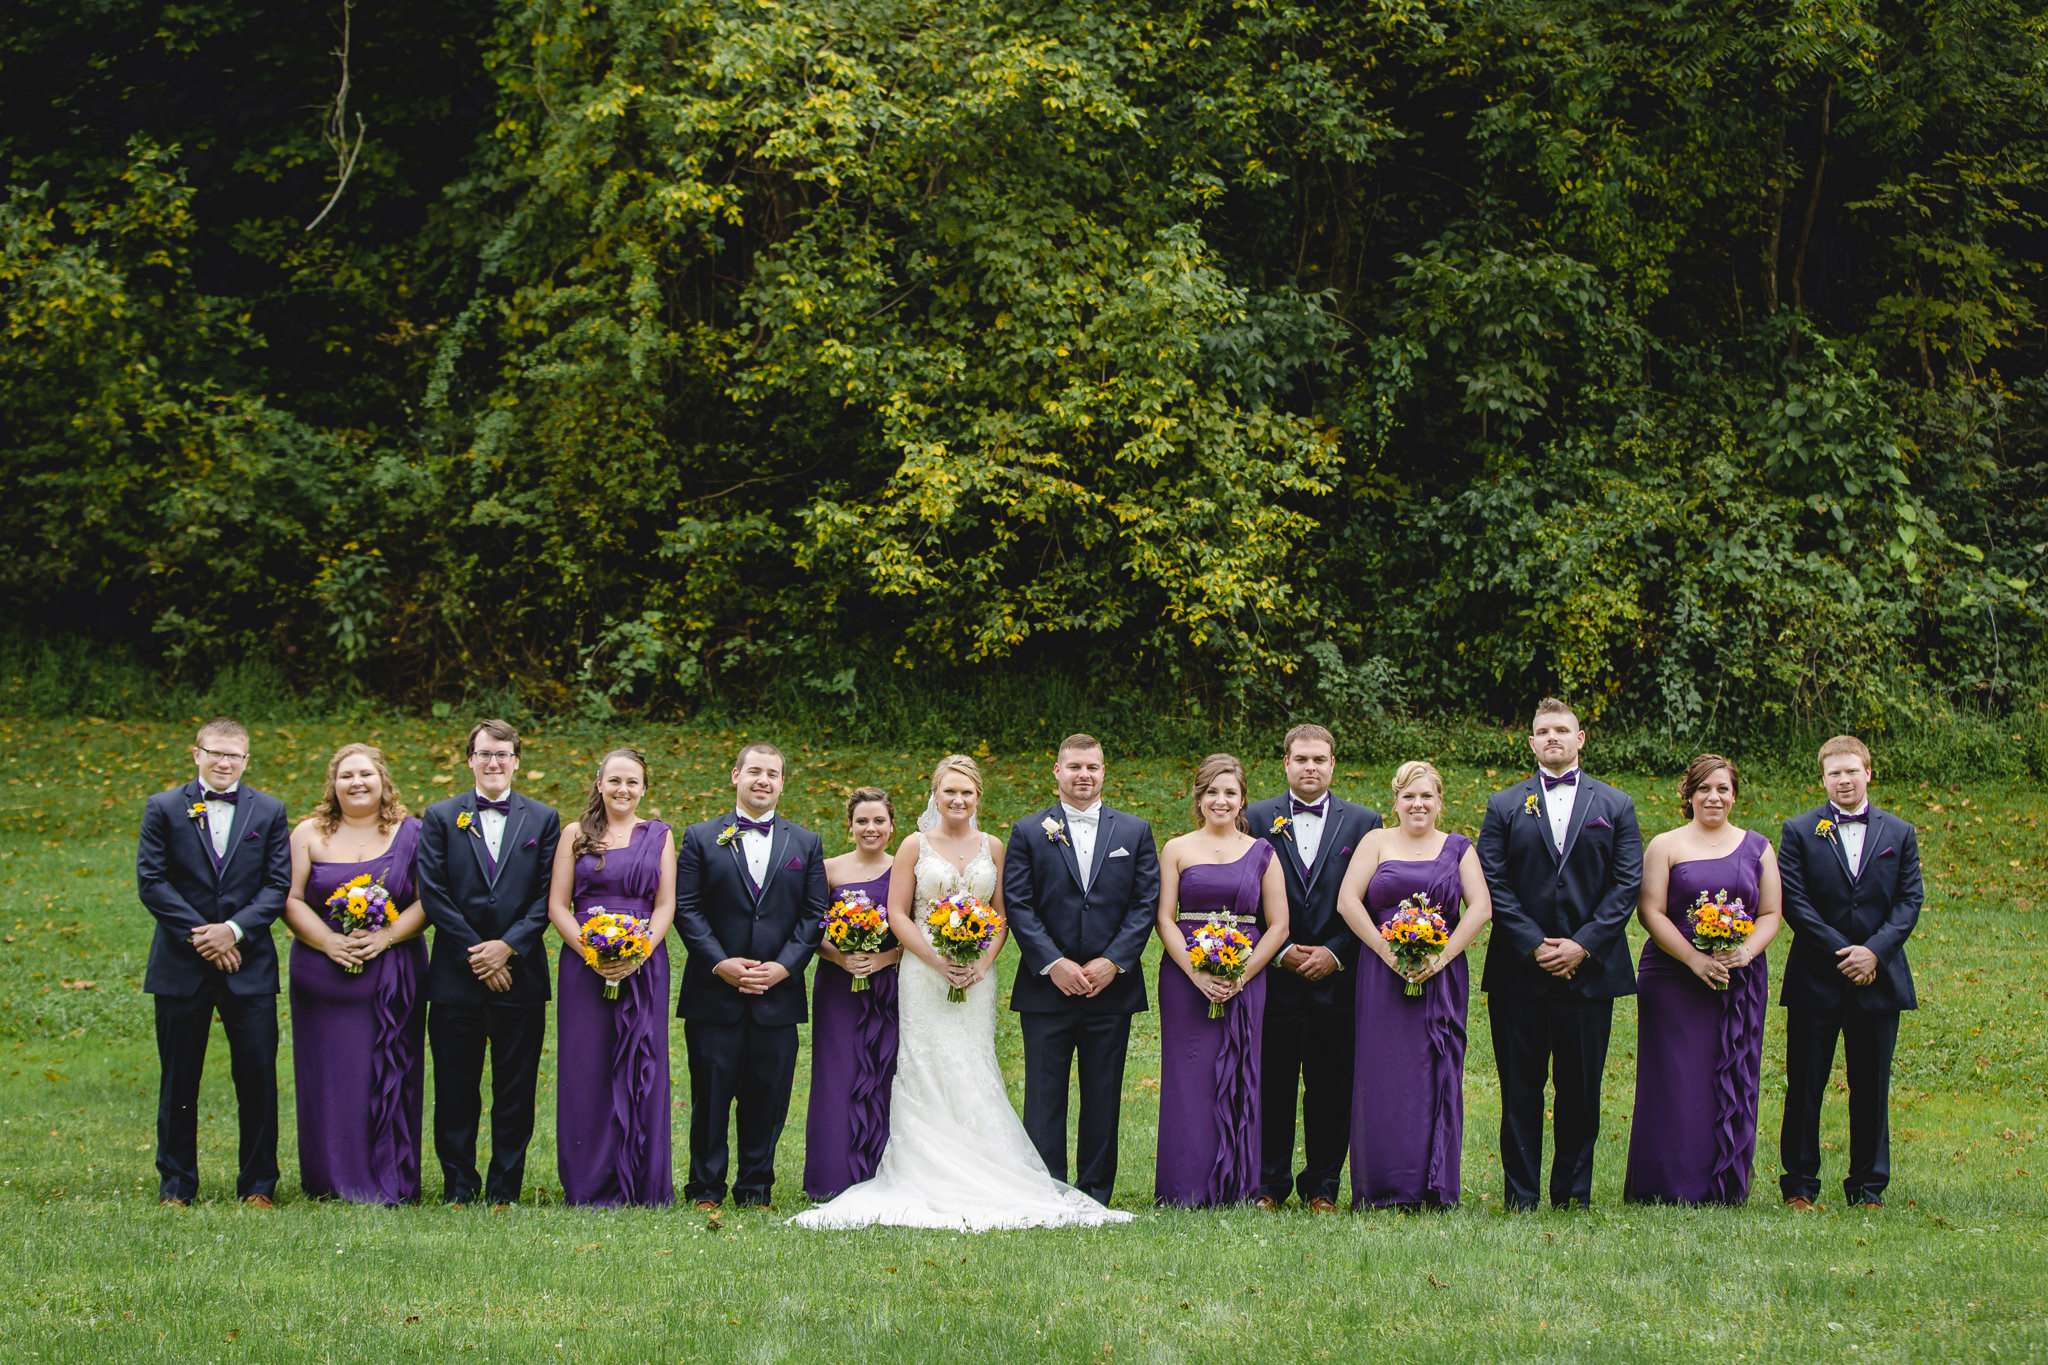 Bridal party poses in a Moon Township park before a wedding reception at the Fez